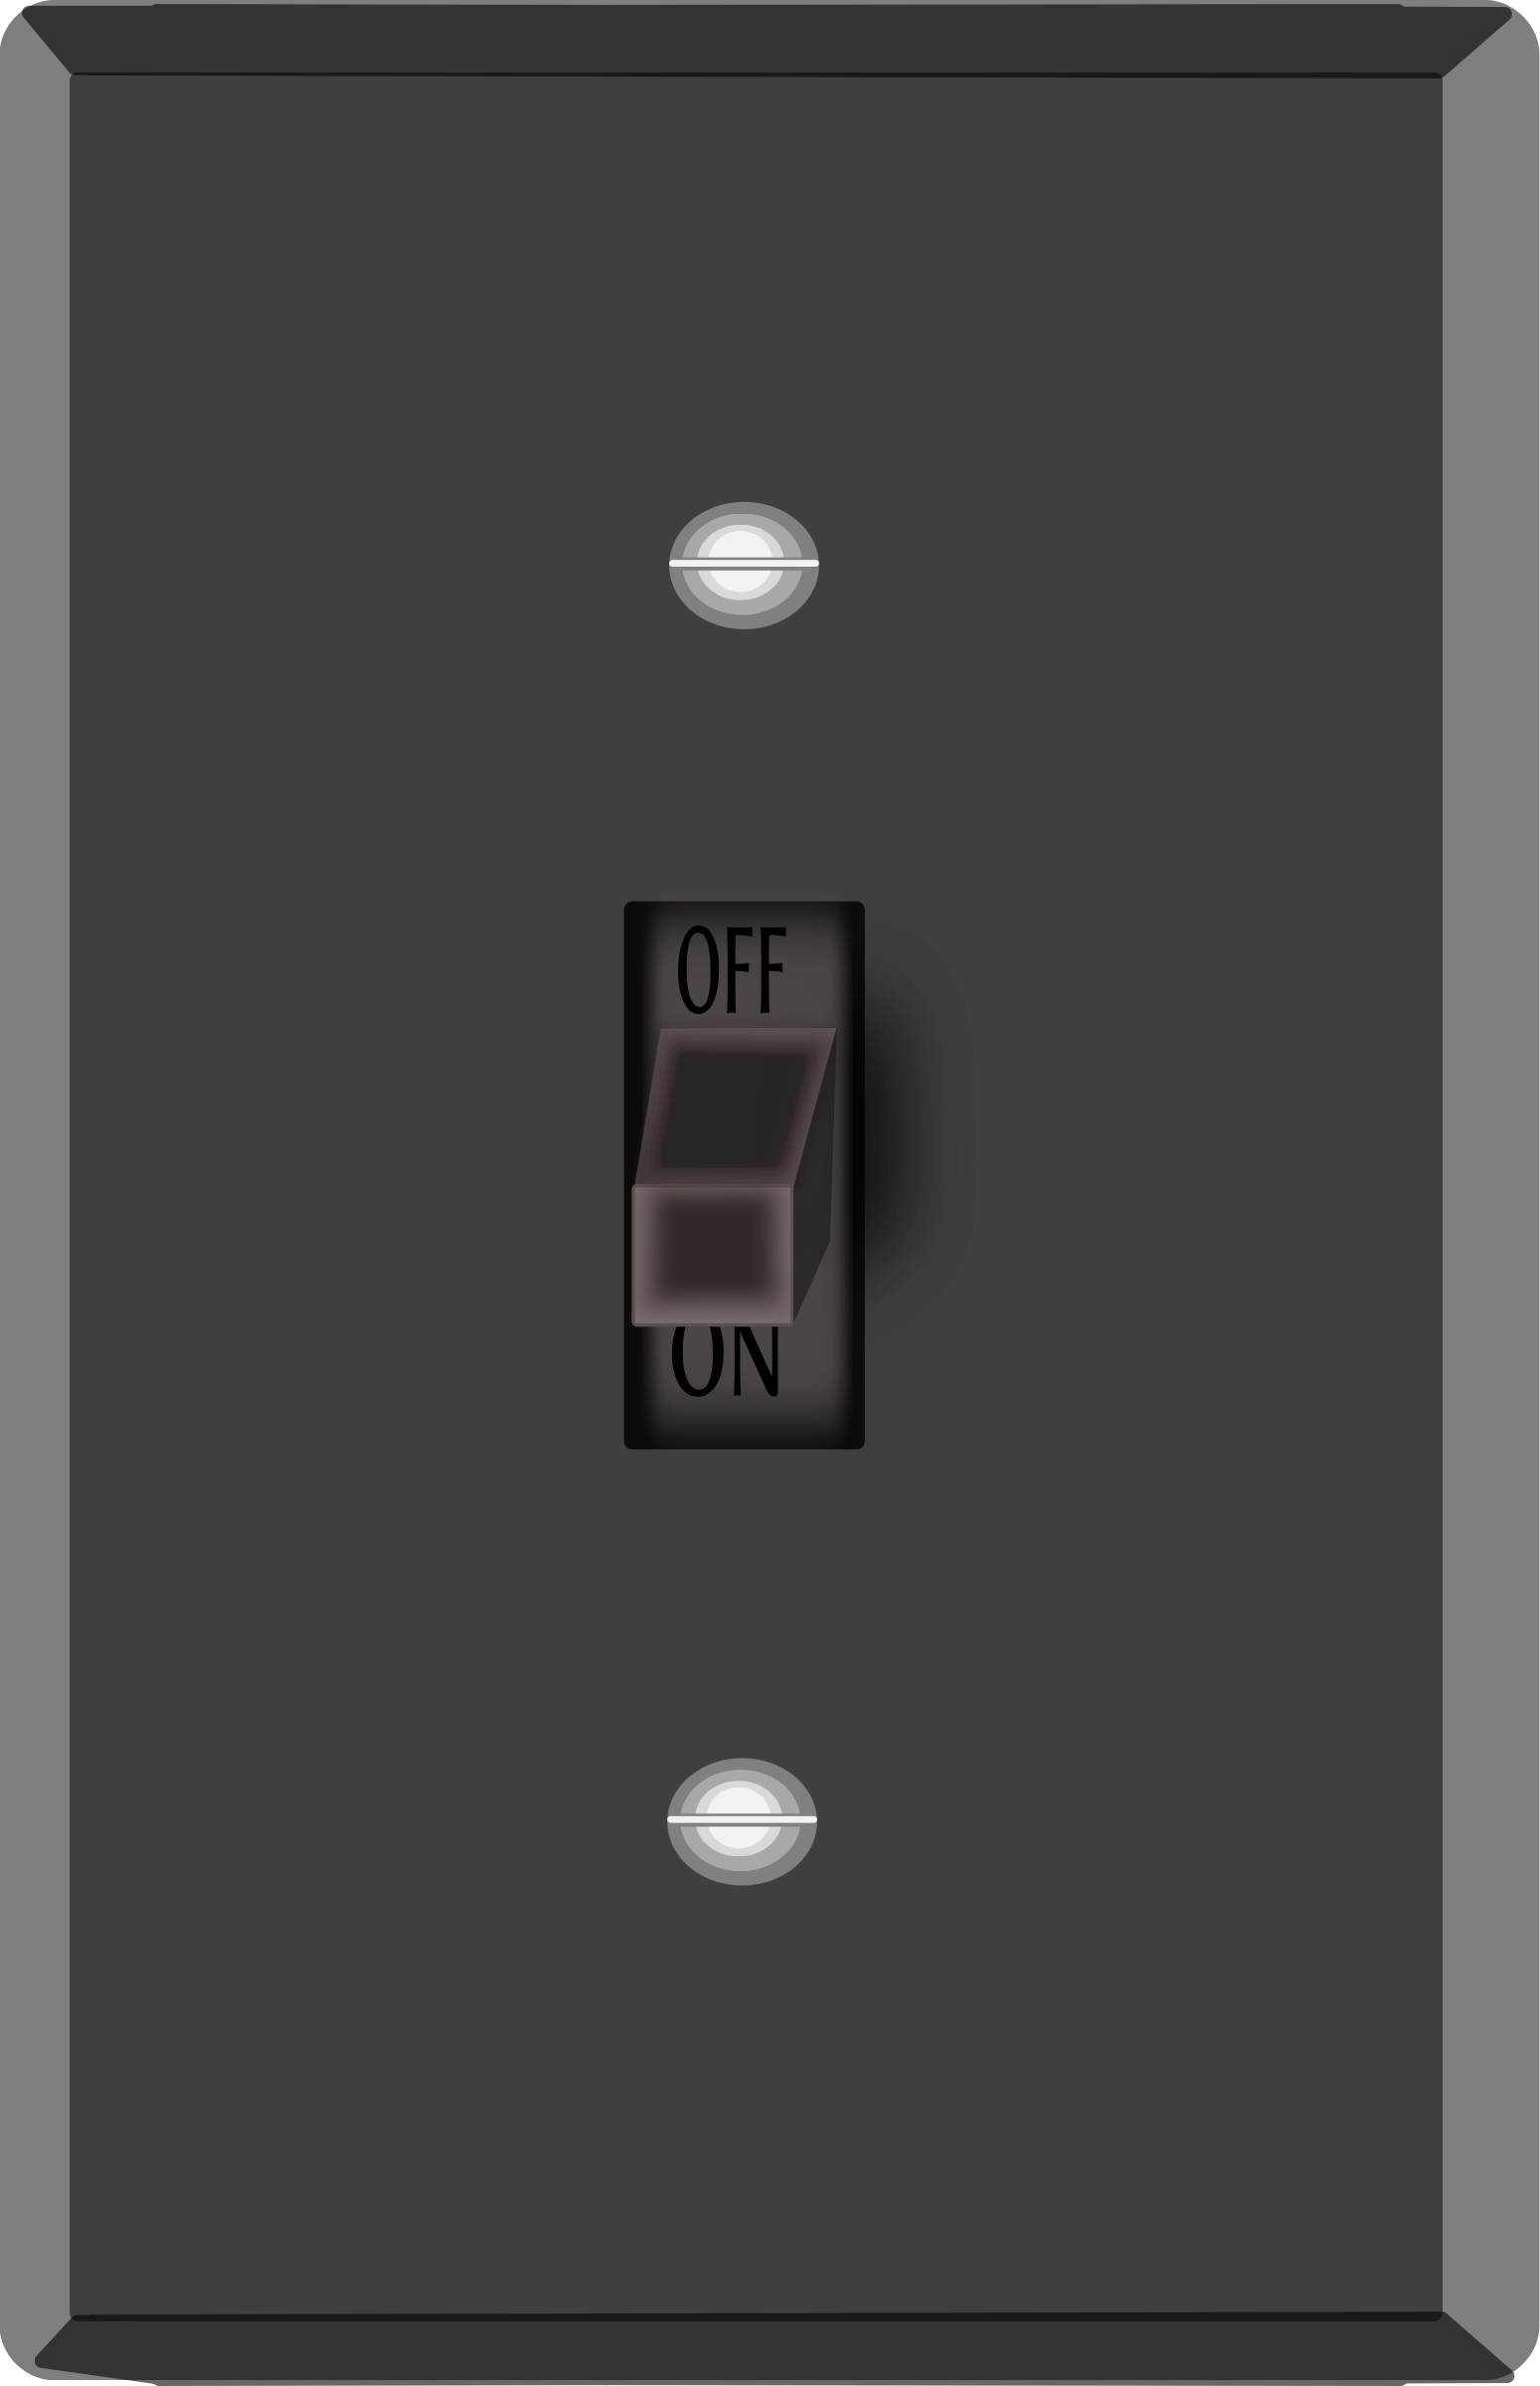 Turn gif to png. Clipart light switch big